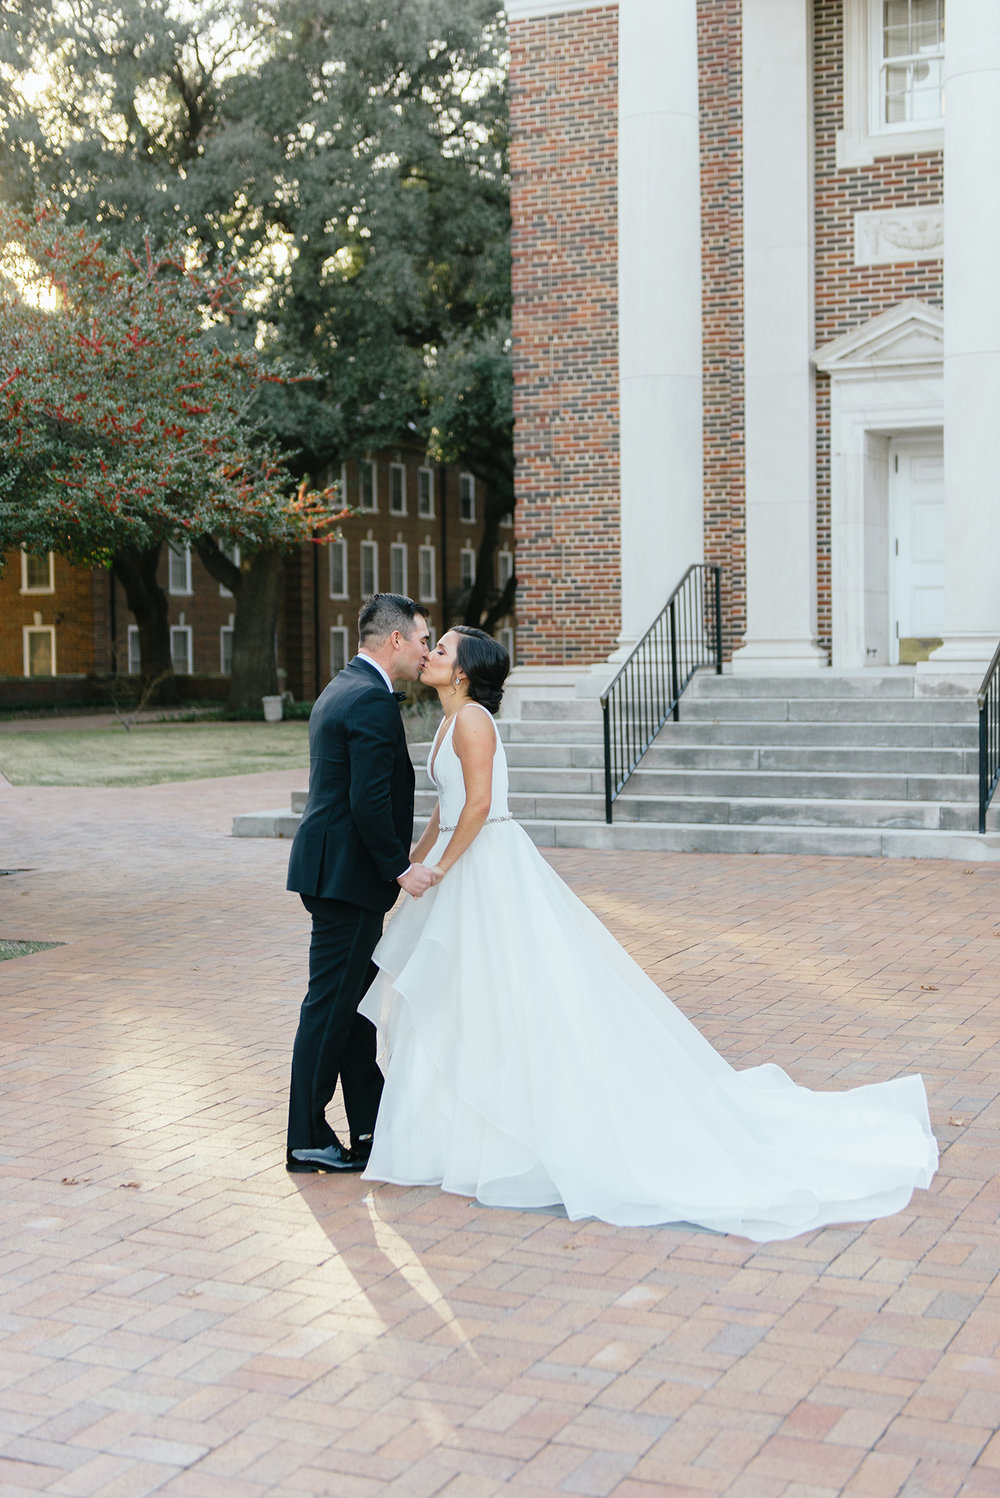 Dallas Wedding Planner - Winter Wedding at The Room on Main - Allday Events - 116.jpg